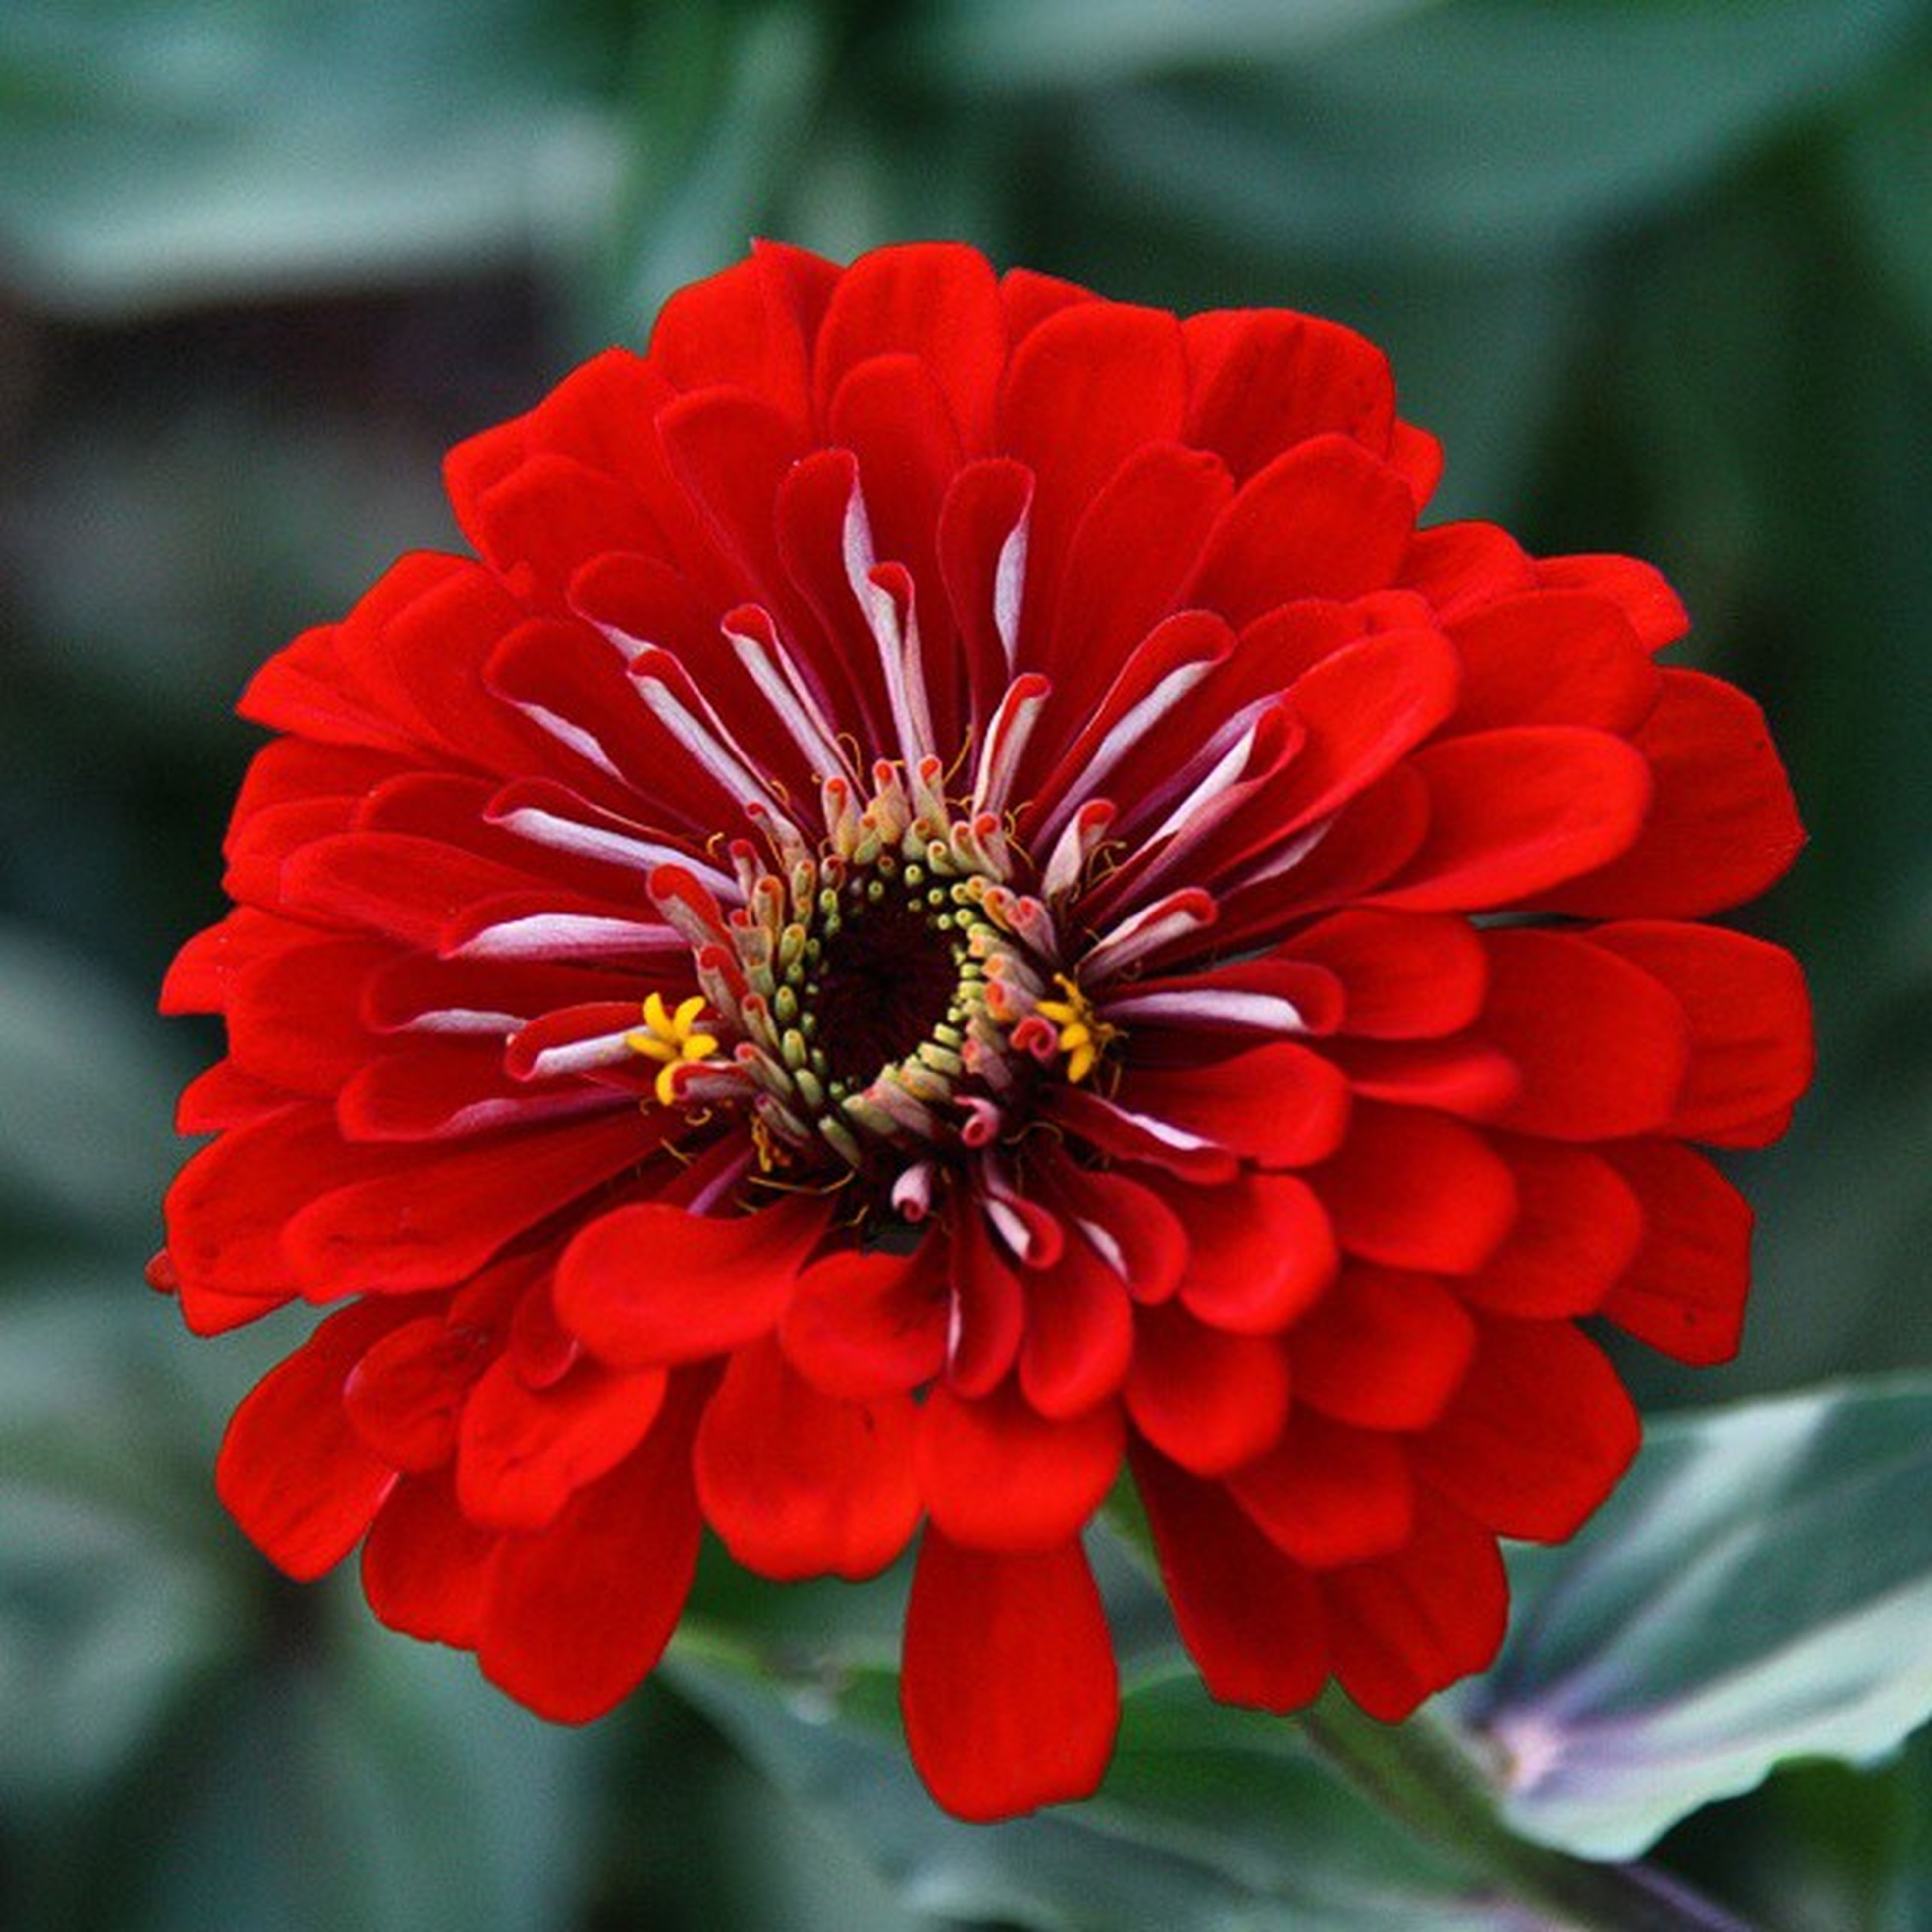 flower, petal, flower head, freshness, fragility, red, focus on foreground, close-up, beauty in nature, growth, blooming, pollen, single flower, nature, plant, in bloom, orange color, day, no people, outdoors